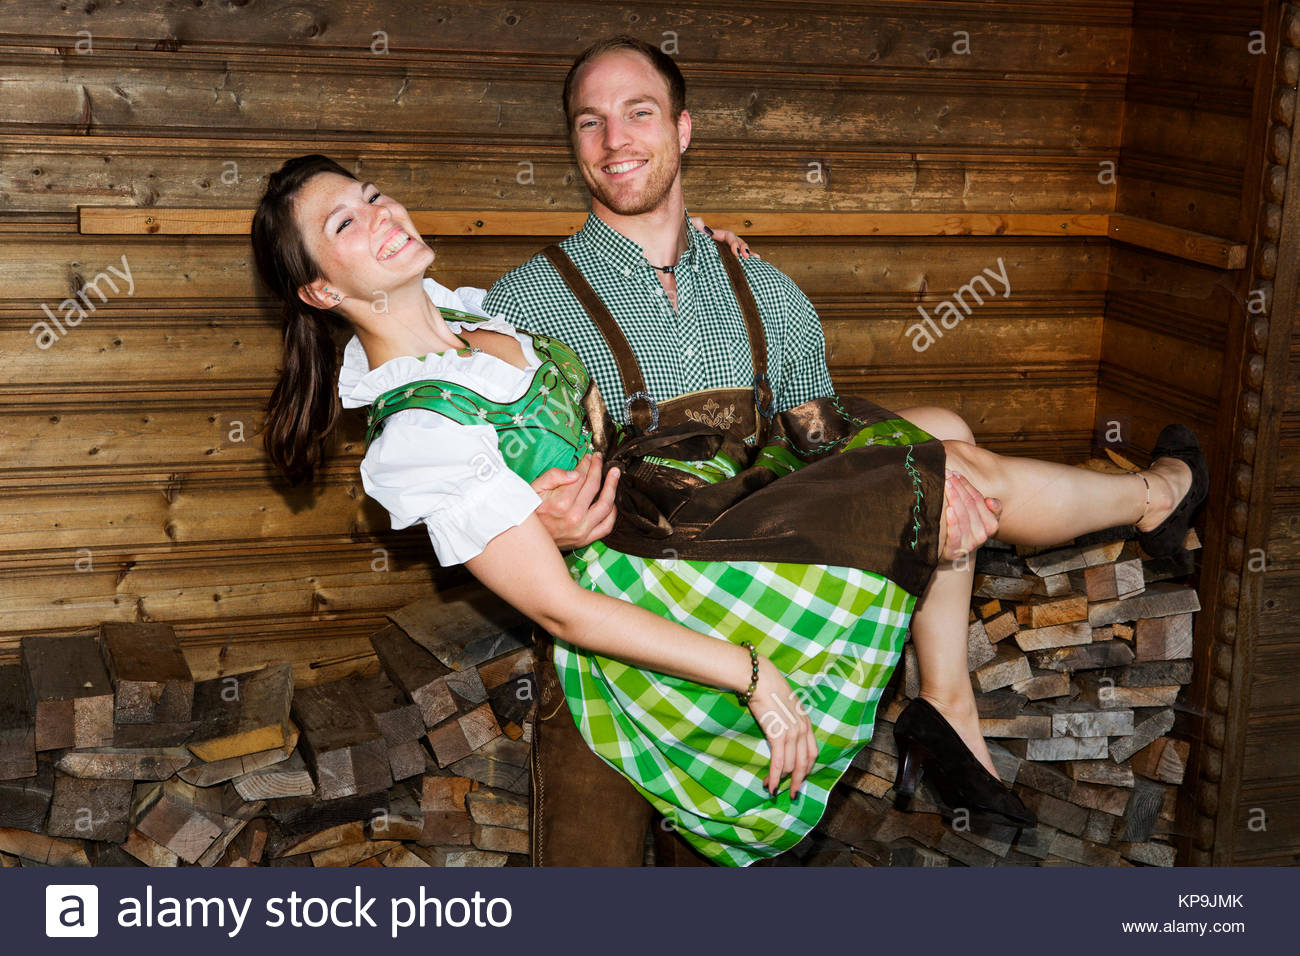 bavarian man holding his girlfriend - Stock Image